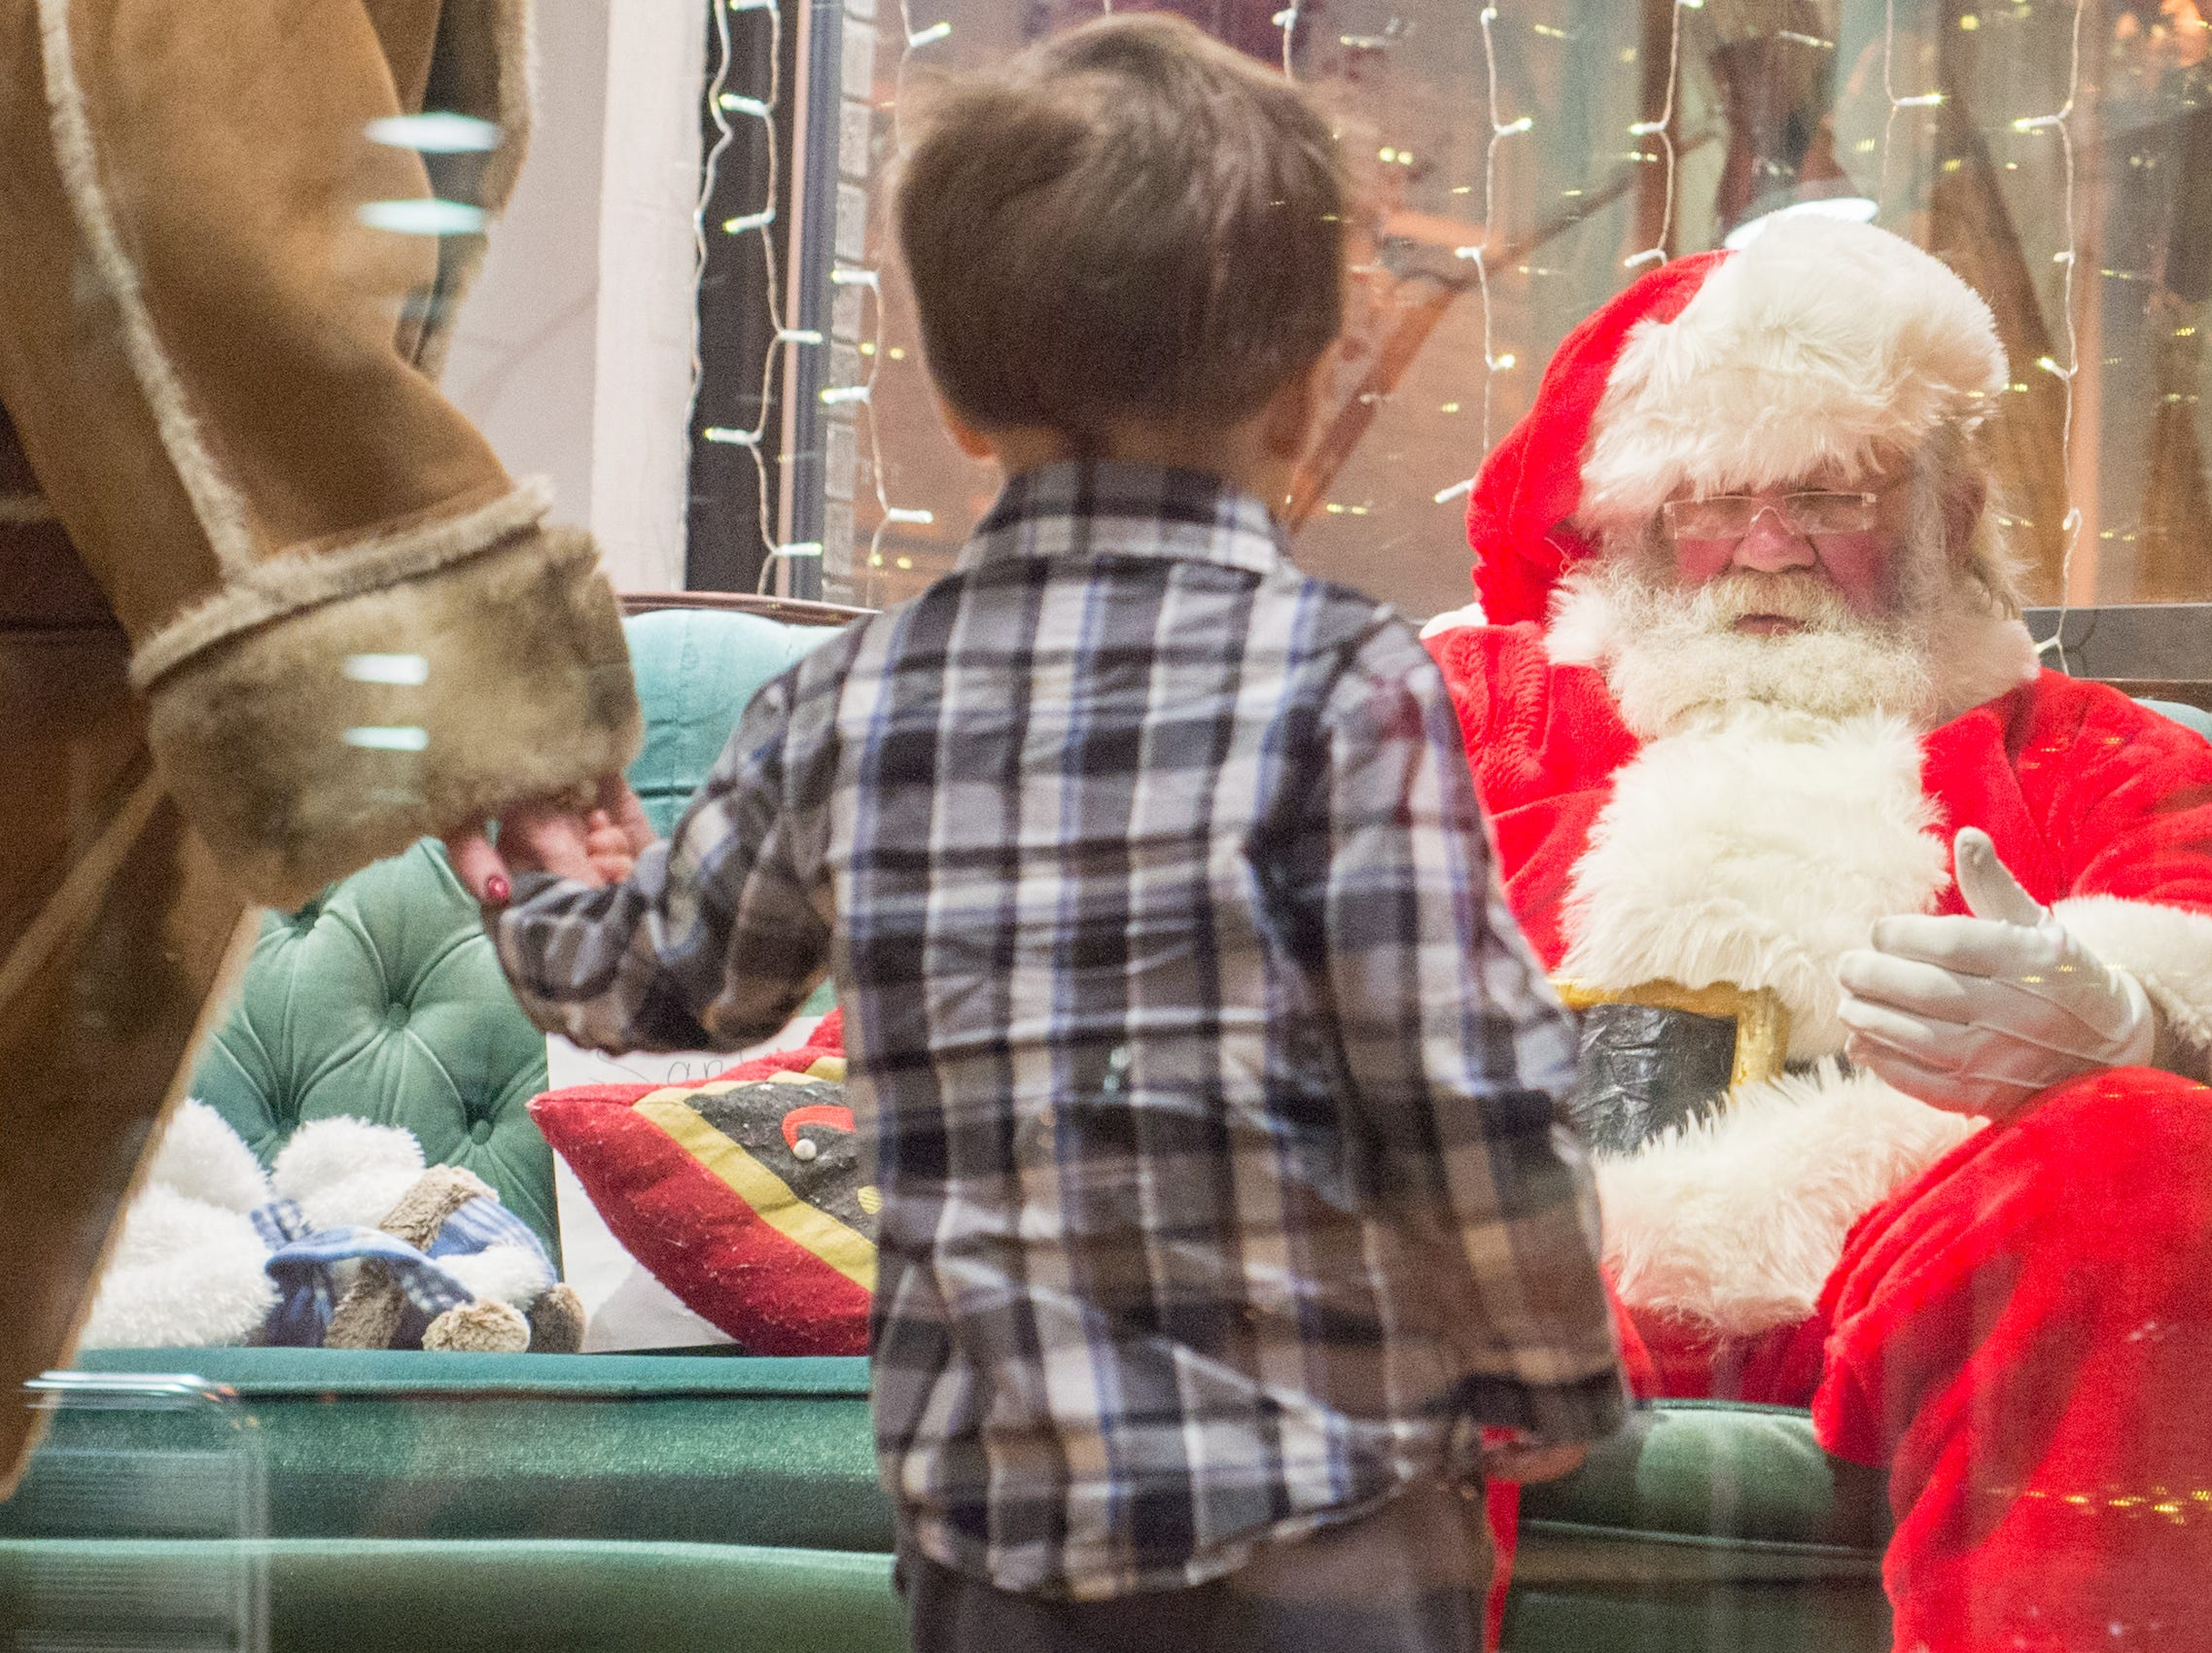 Aiden Seals meets Mr. Claus during the Santa on the Square event presented by Historic Downtown Gallatin at 106 Public Square on Saturday, Dec. 22.